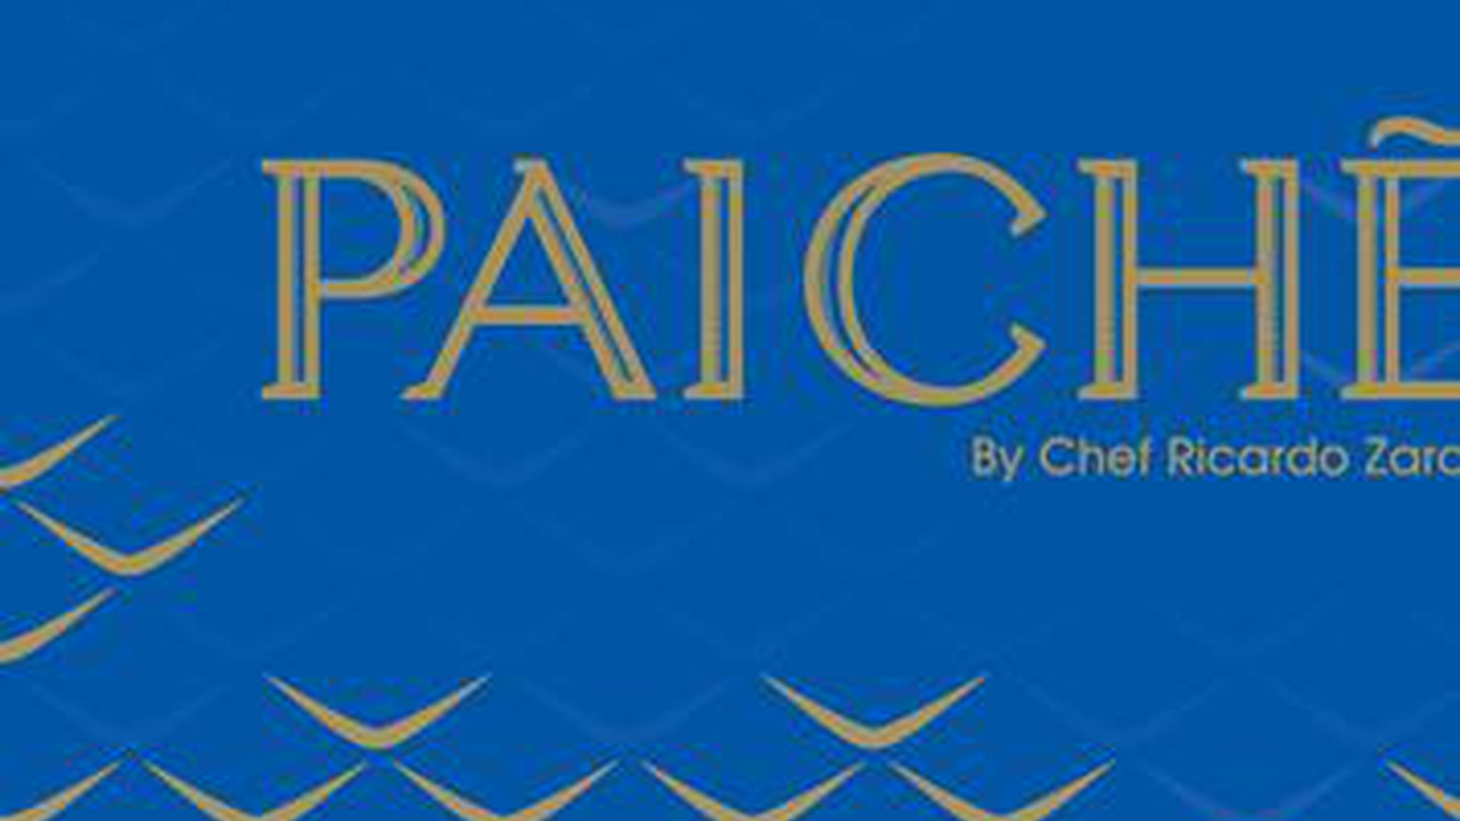 Jonathan Gold is the Pulitzer Prize-winning food writer for the LA Times reviews Paiche, the new Marina del Rey outpost of Chef Ricardo Zarate.